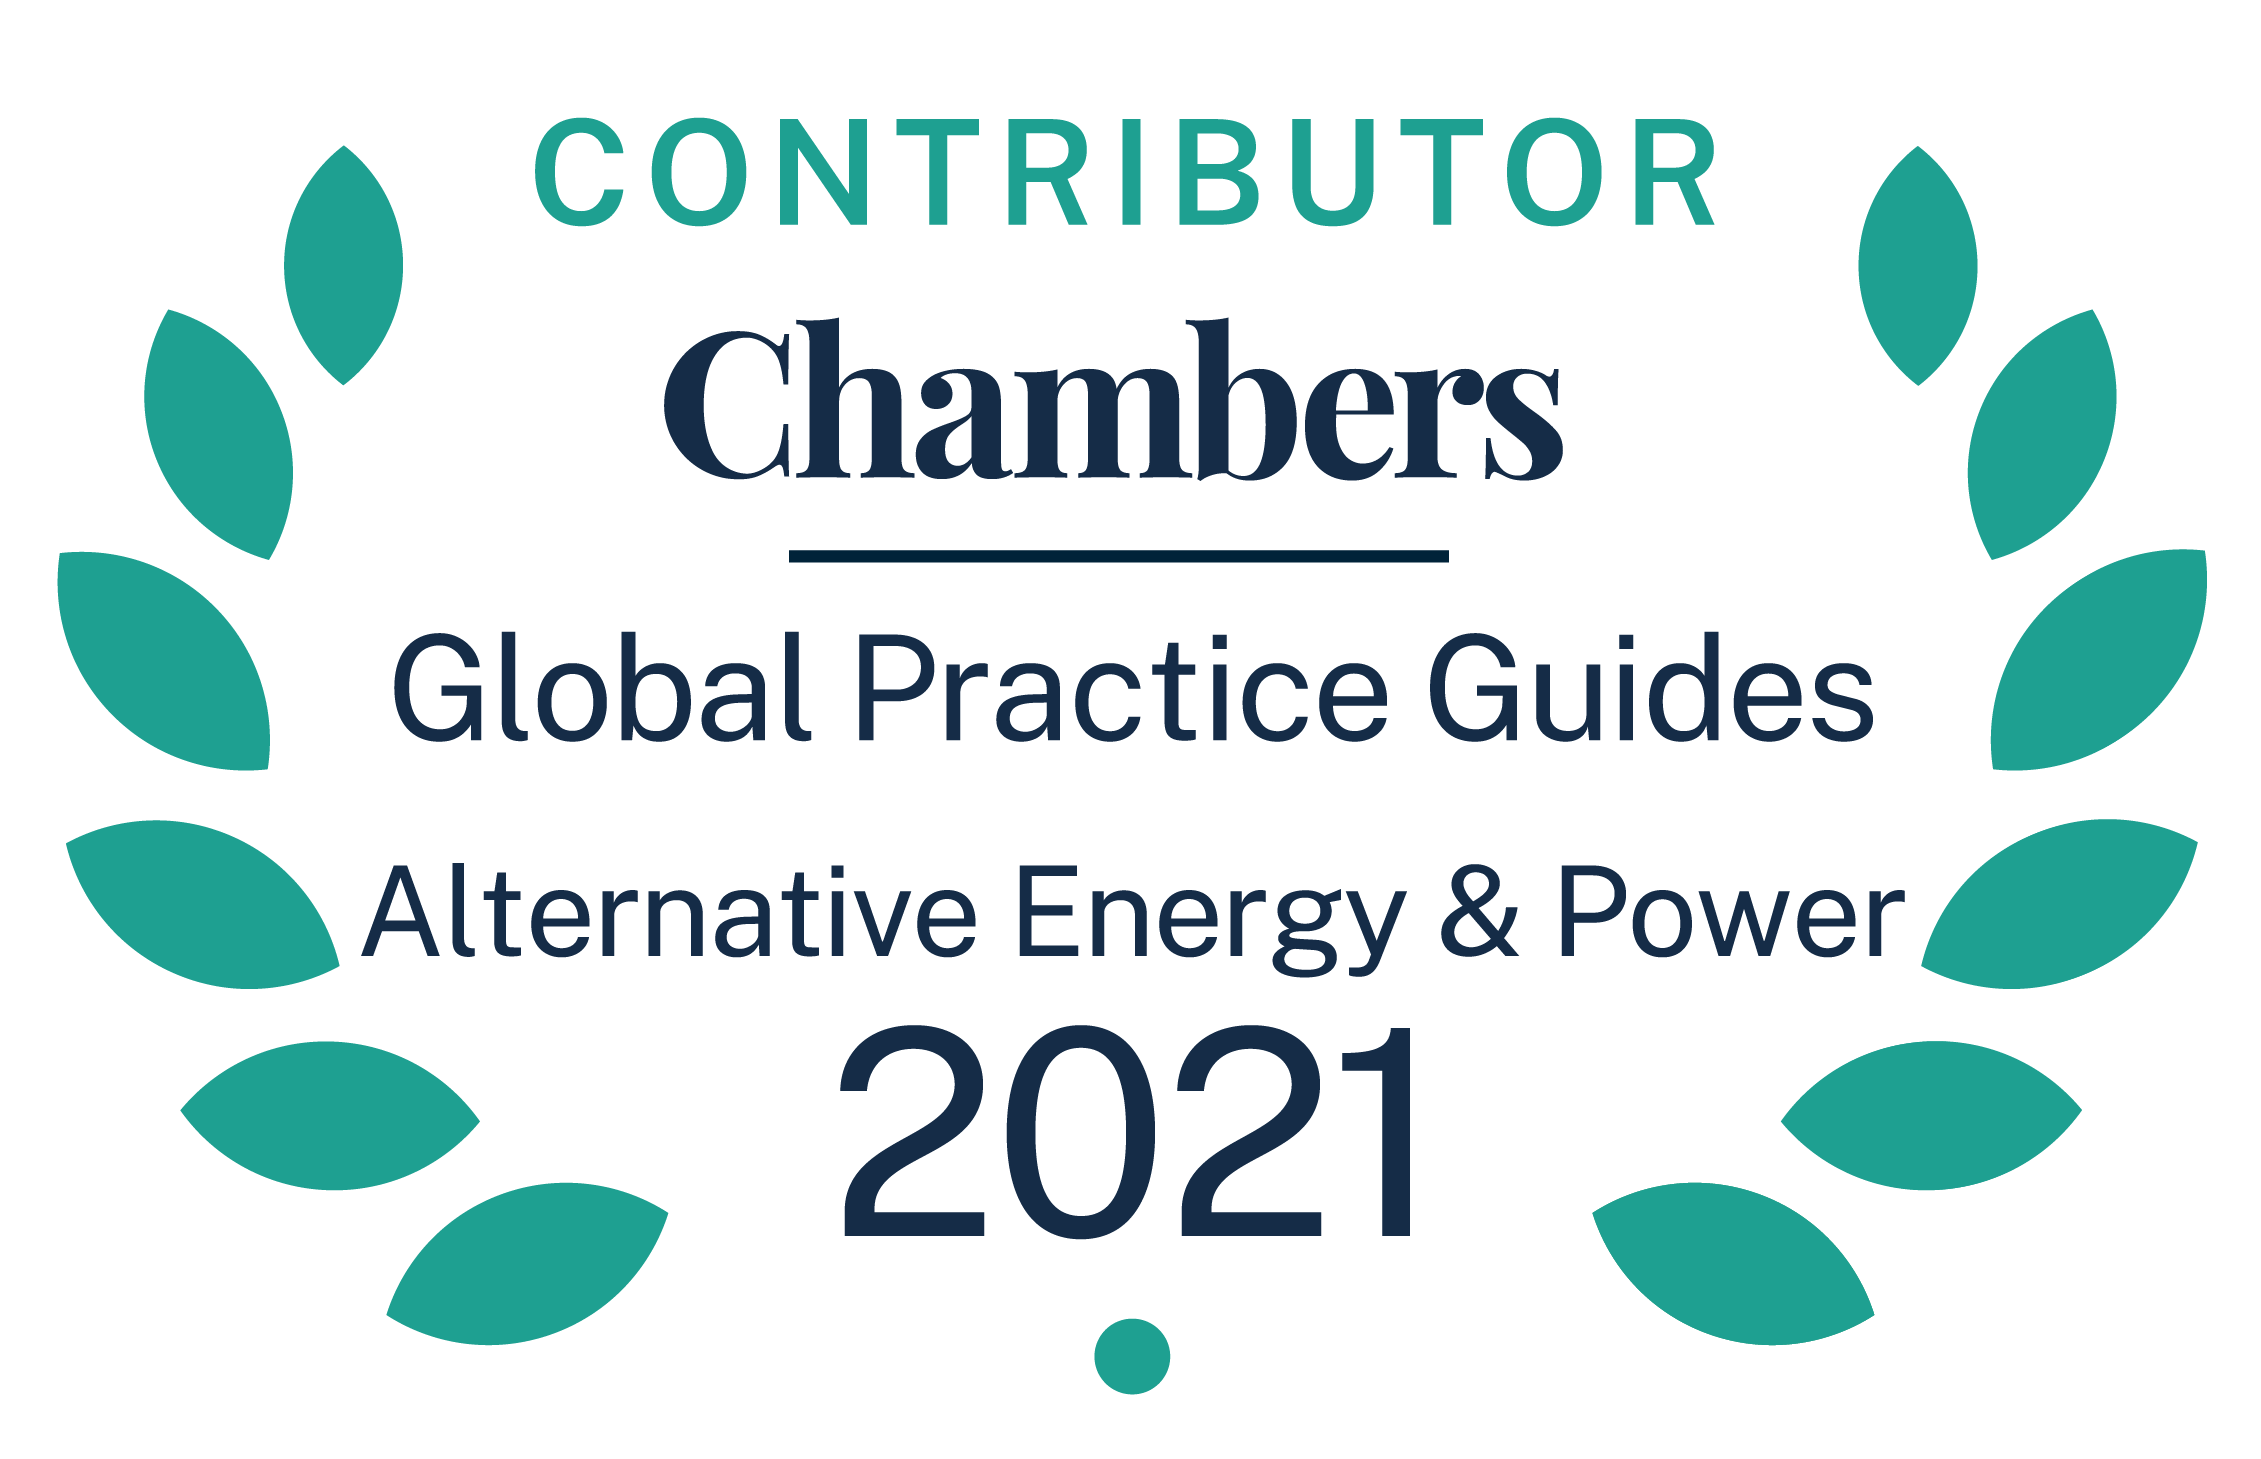 Contributor, Chamber Global Practice Guides for Alternative Energy & Power